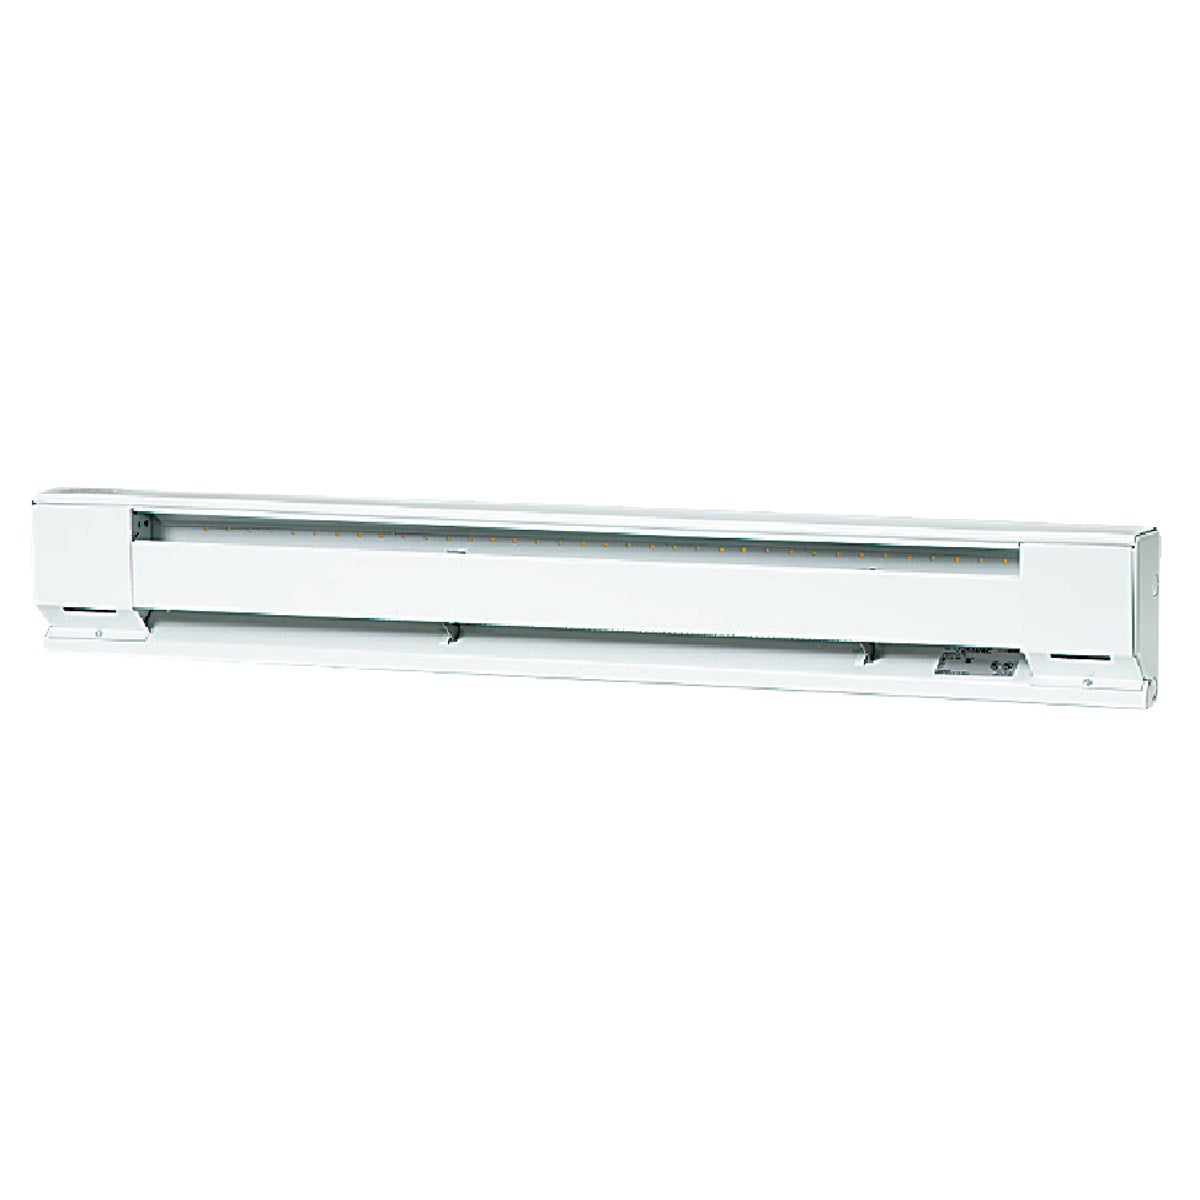 4' BASEBOARD HEATER - F2514 by Fahrenheat Marley